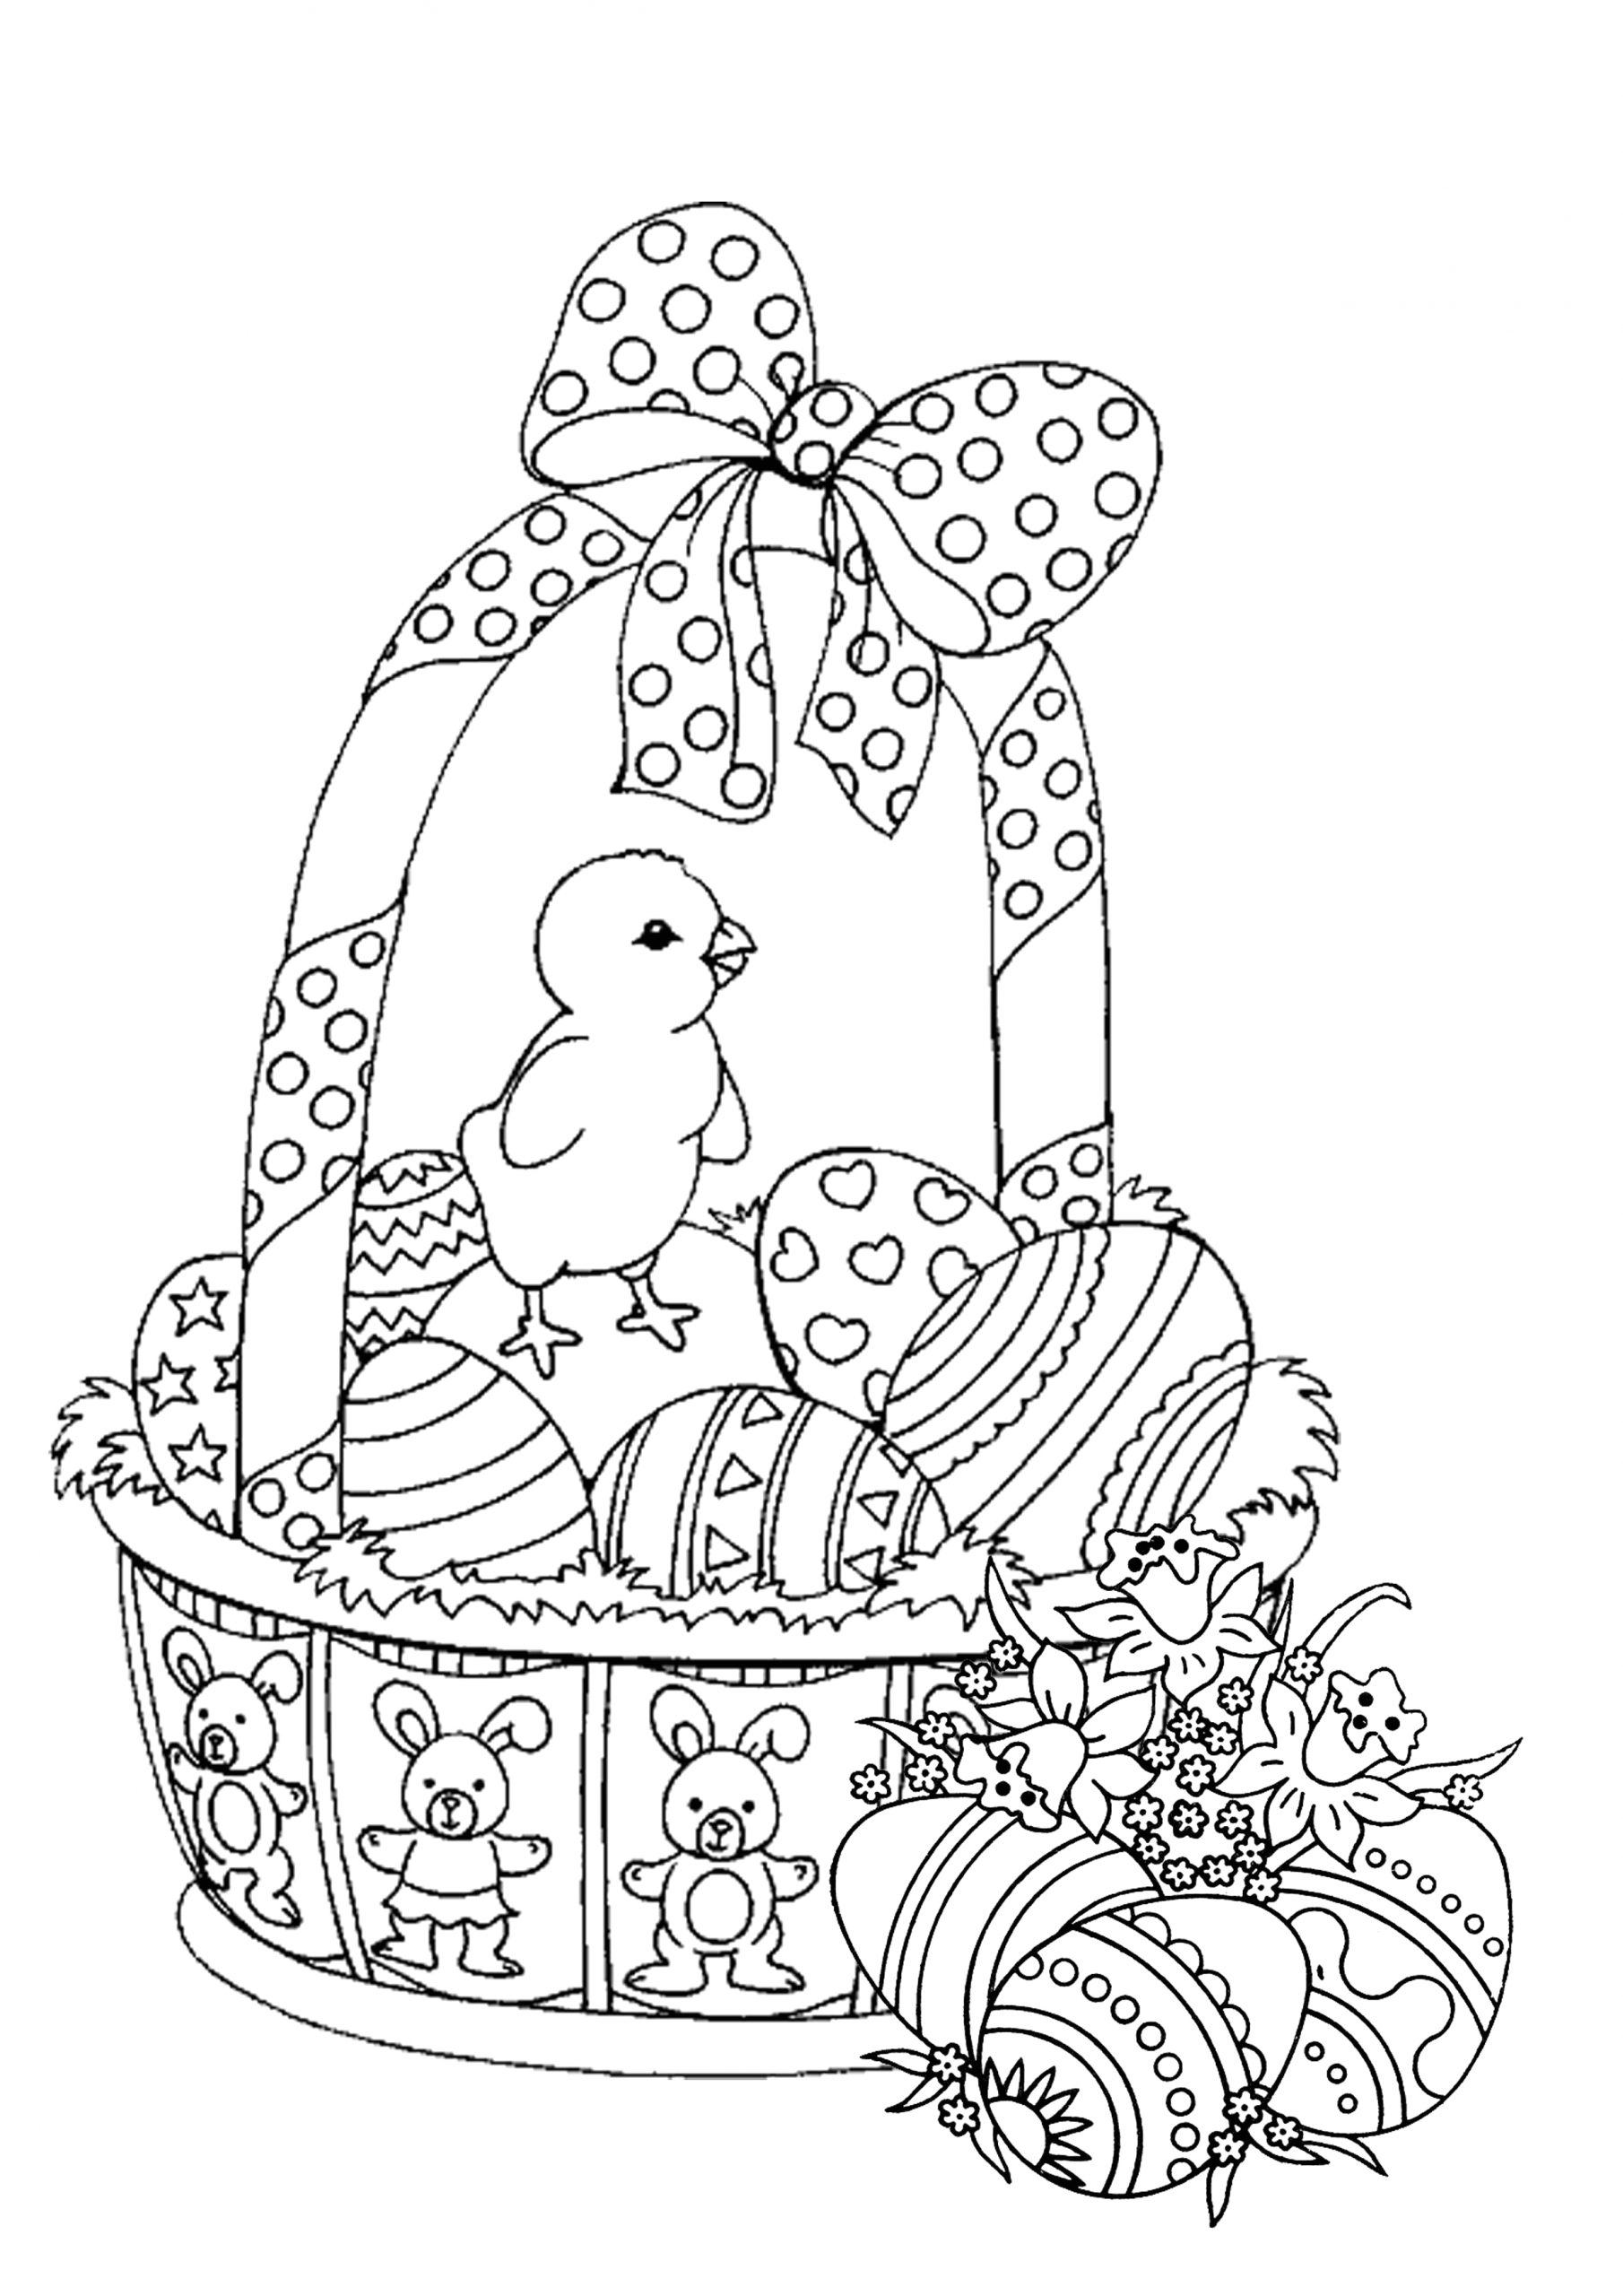 Easter Coloring Pages for Adults Free Printable Easter Coloring Pages for Adults Best Coloring Pages for